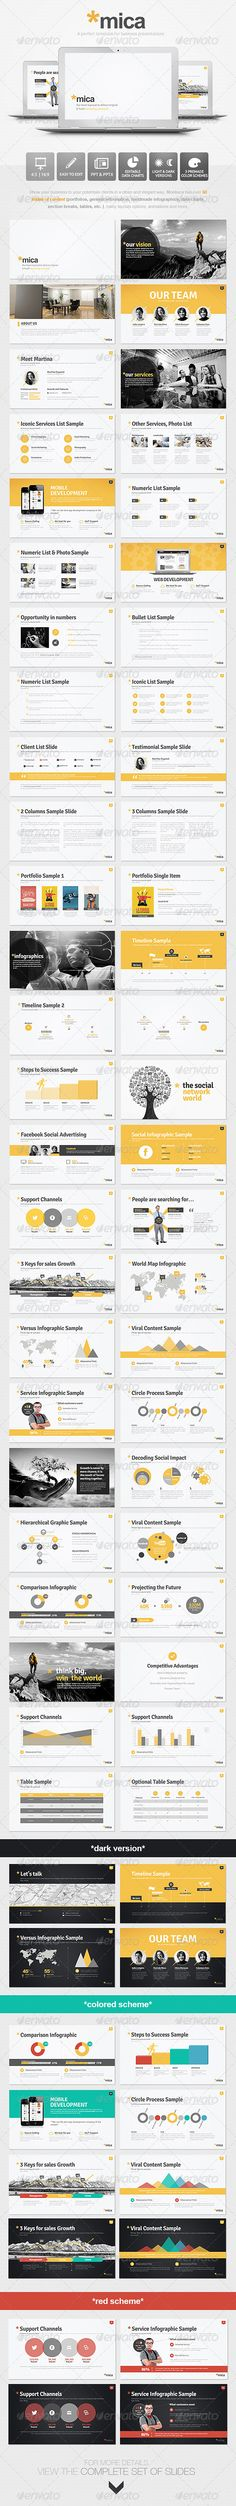 Presentation Templates - Mica Powerpoint Presentation Template | GraphicRiver